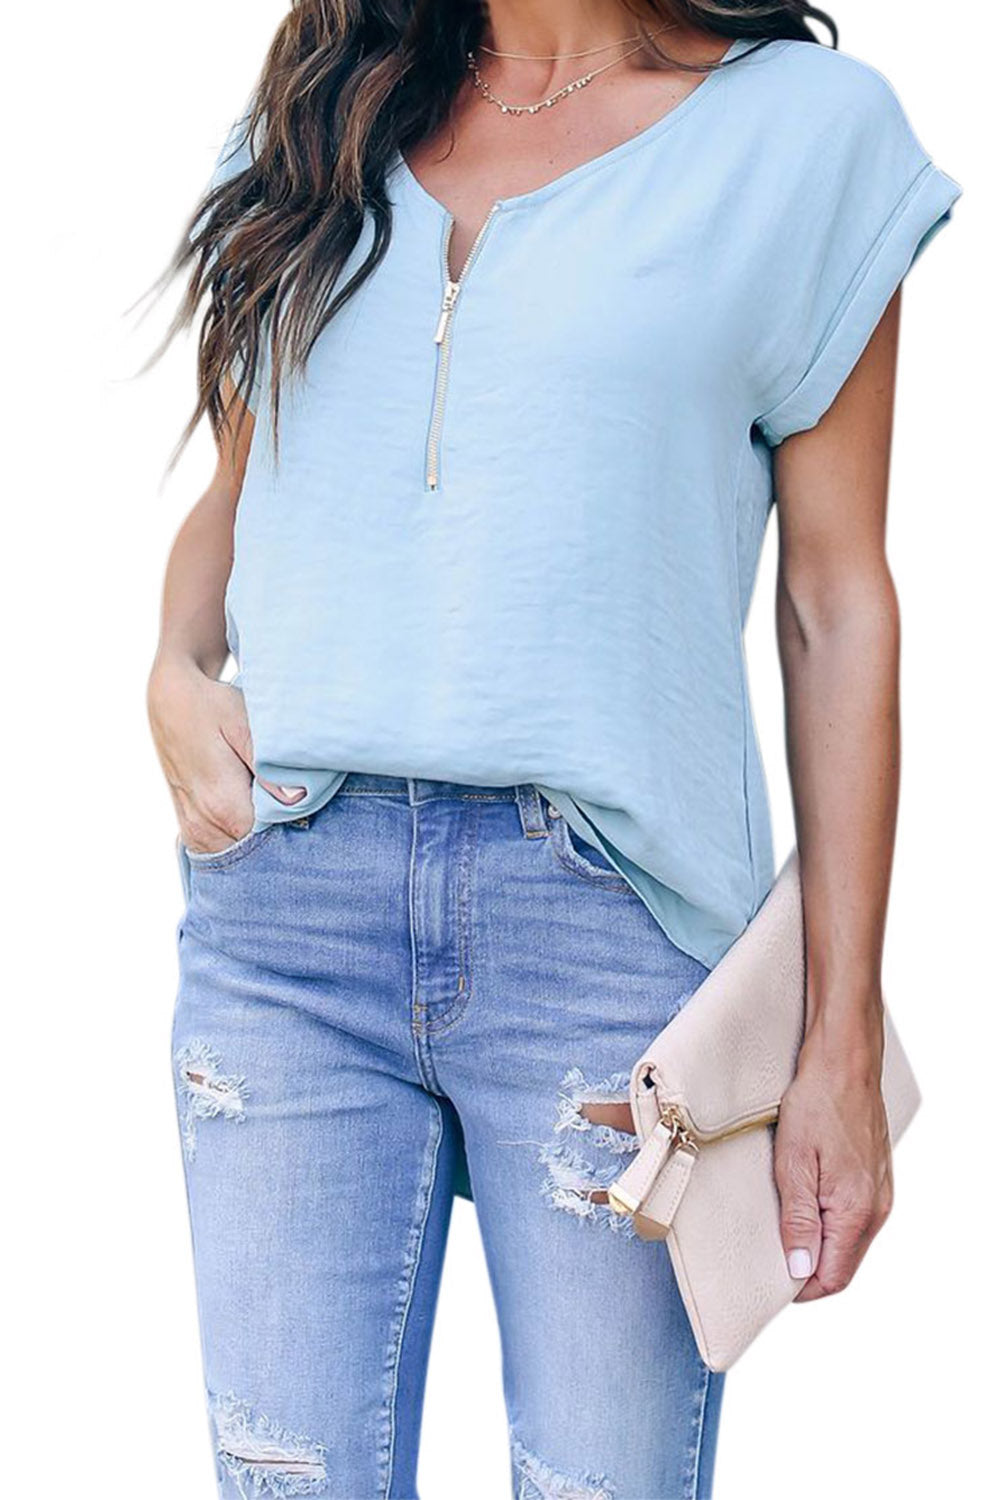 Sky Blue Zip To It Blouse